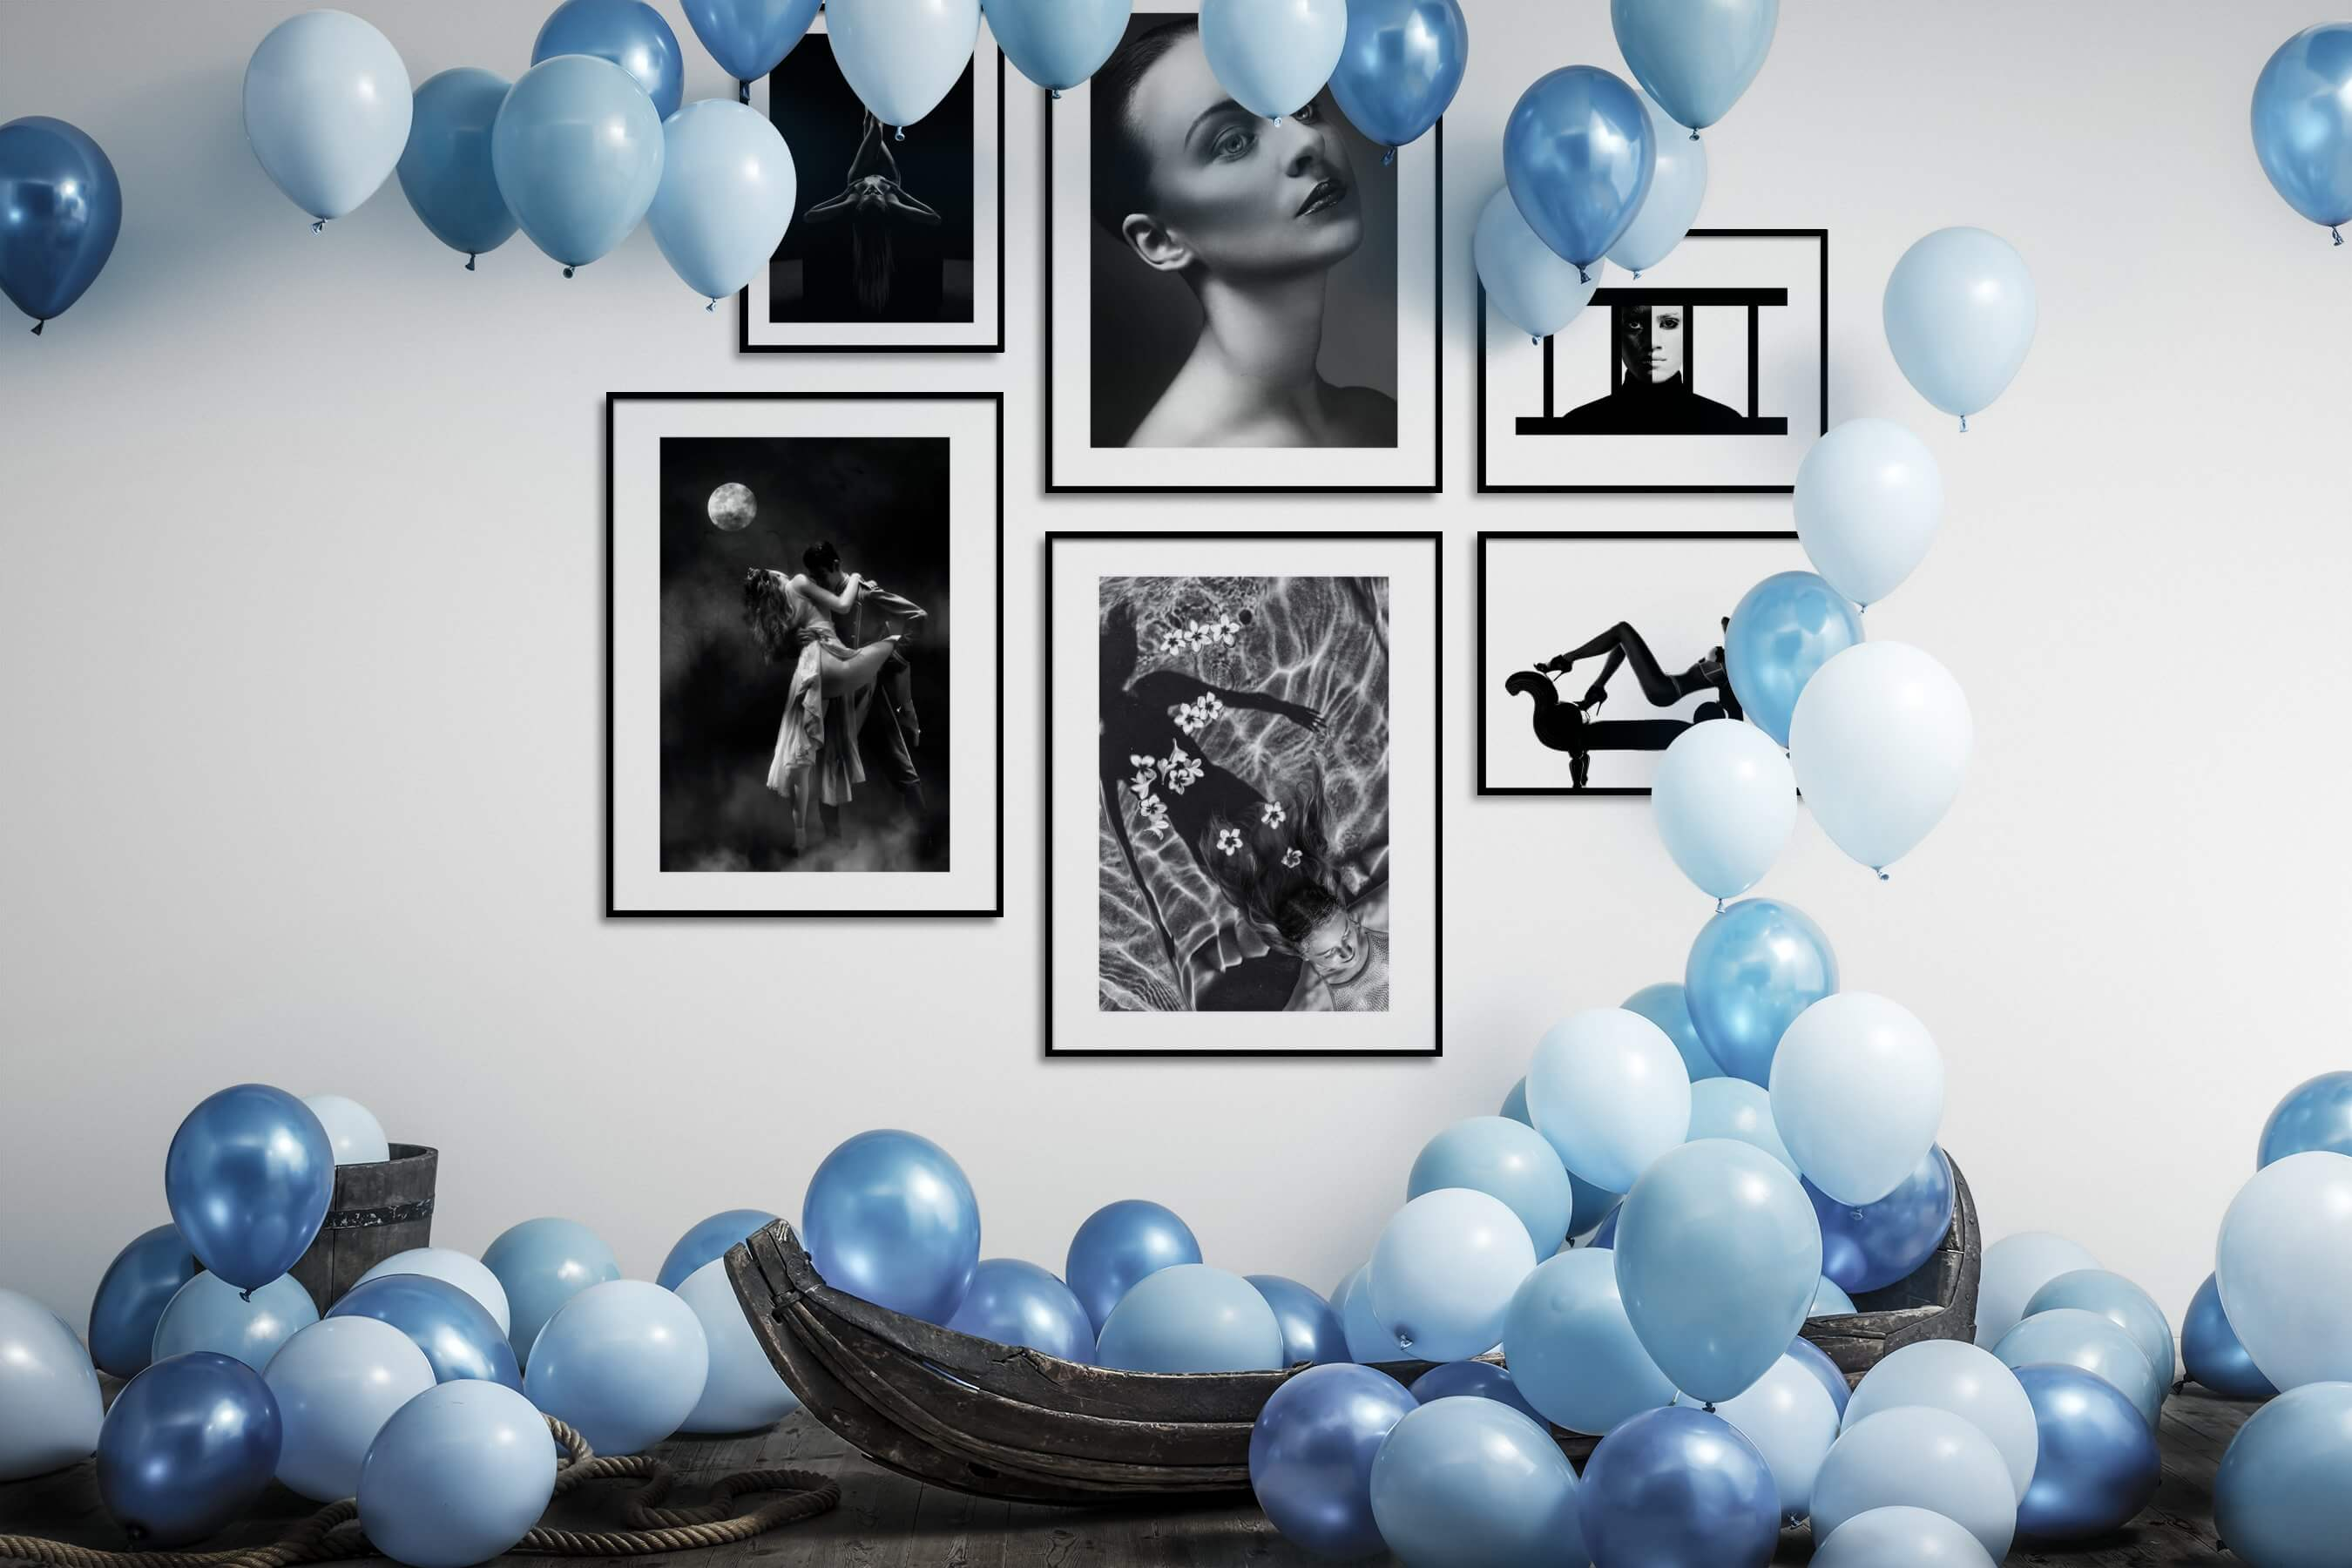 Gallery wall idea with six framed pictures arranged on a wall depicting Fashion & Beauty, Black & White, For the Minimalist, Beach & Water, Artsy, and Bright Tones